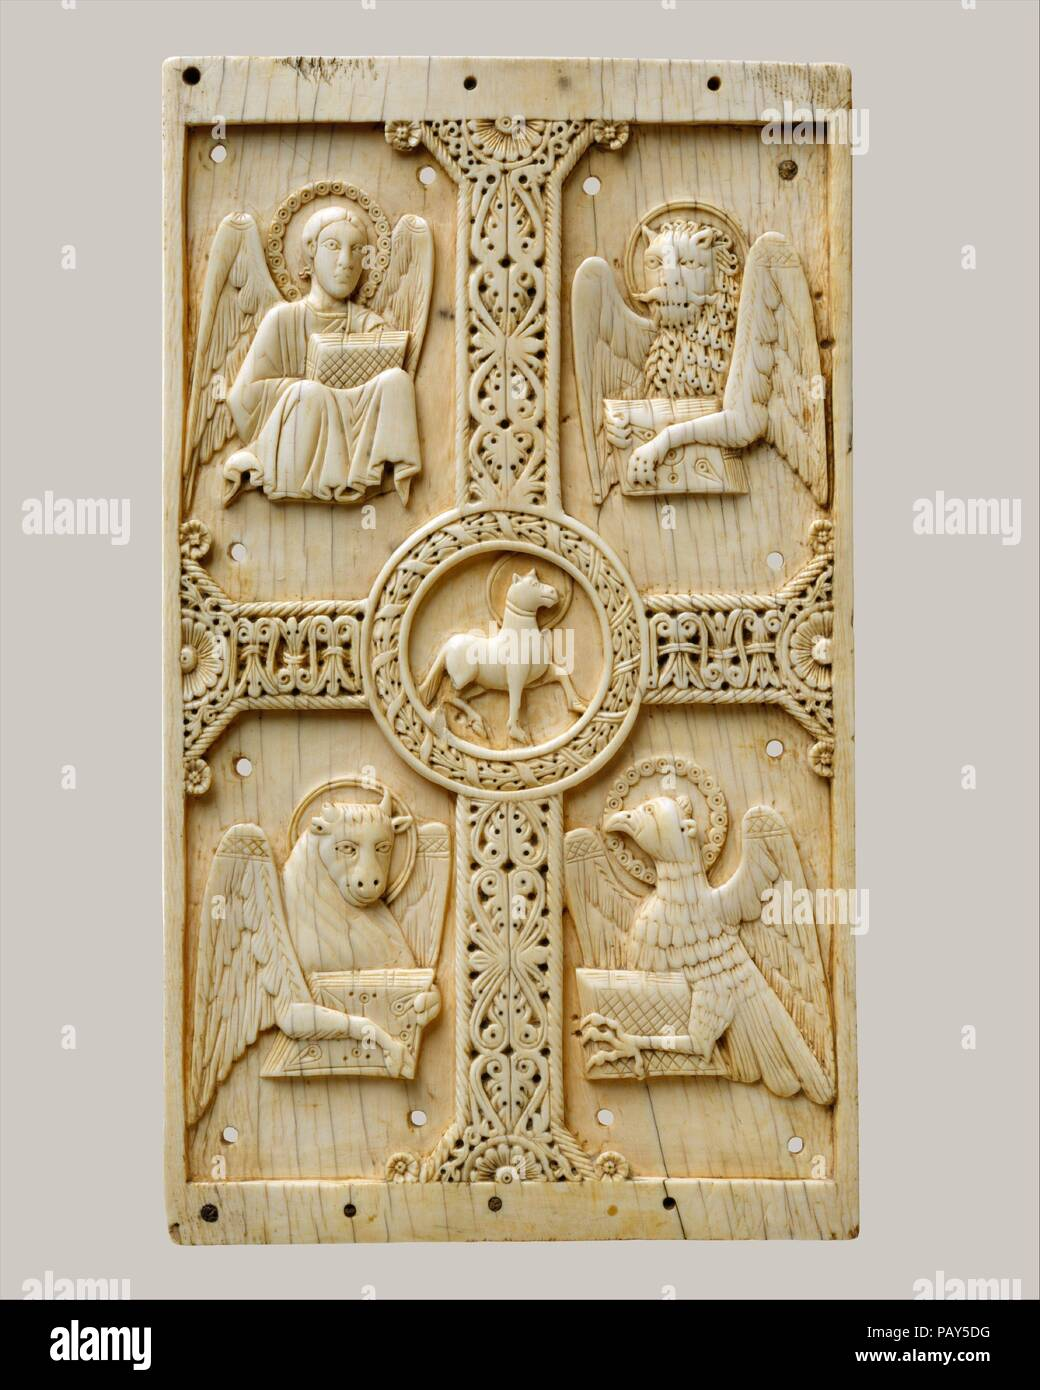 Plaque With Agnus Dei On A Cross Between Emblems Of The Four